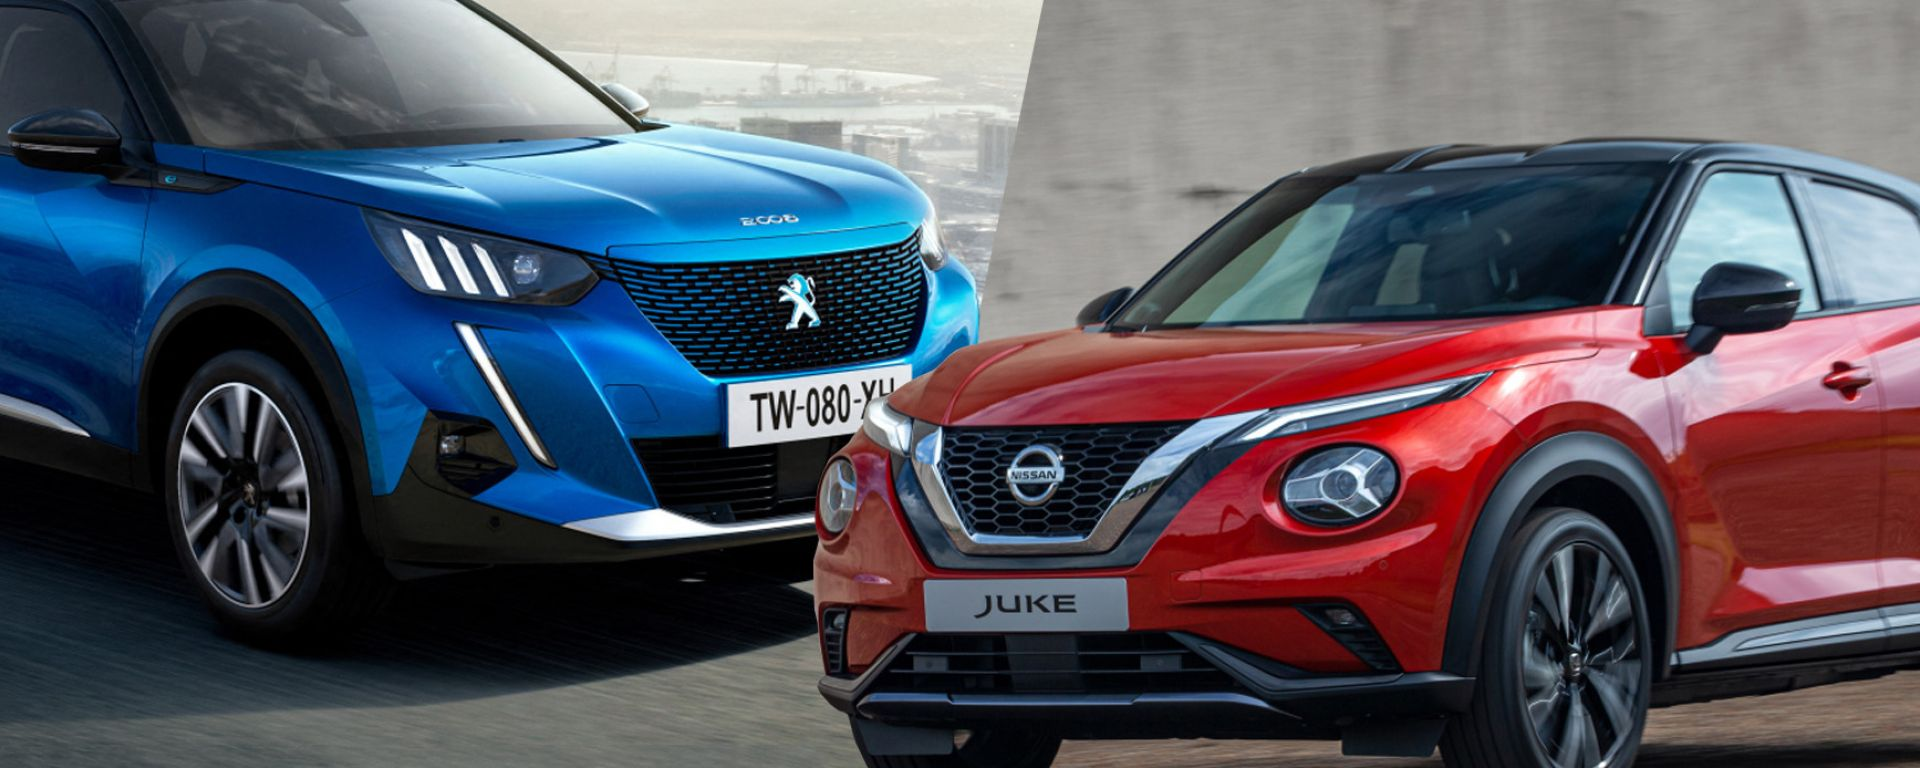 Peugeot 2008 e Nissan Juke 2020 a confronto: il video